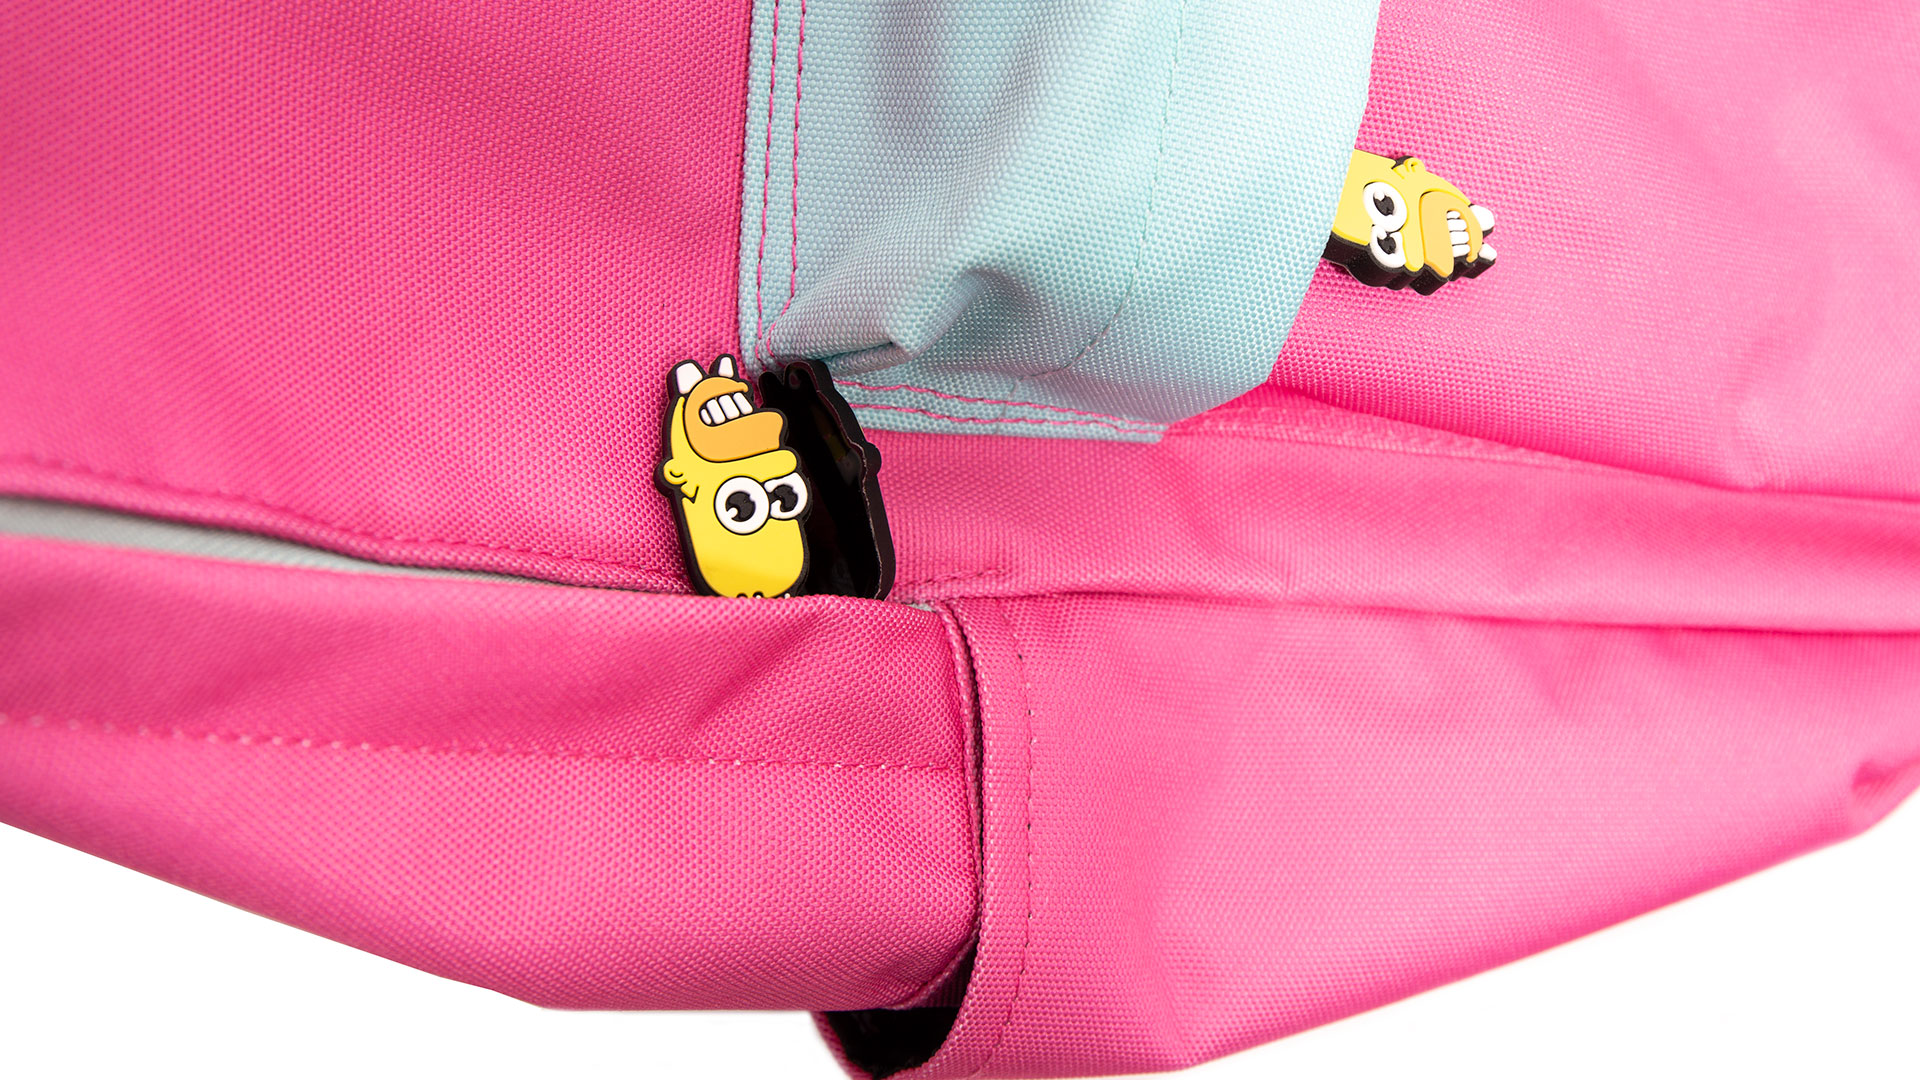 Fox - The Simpsons - Mr Sparkle Backpack - Screenshot 1